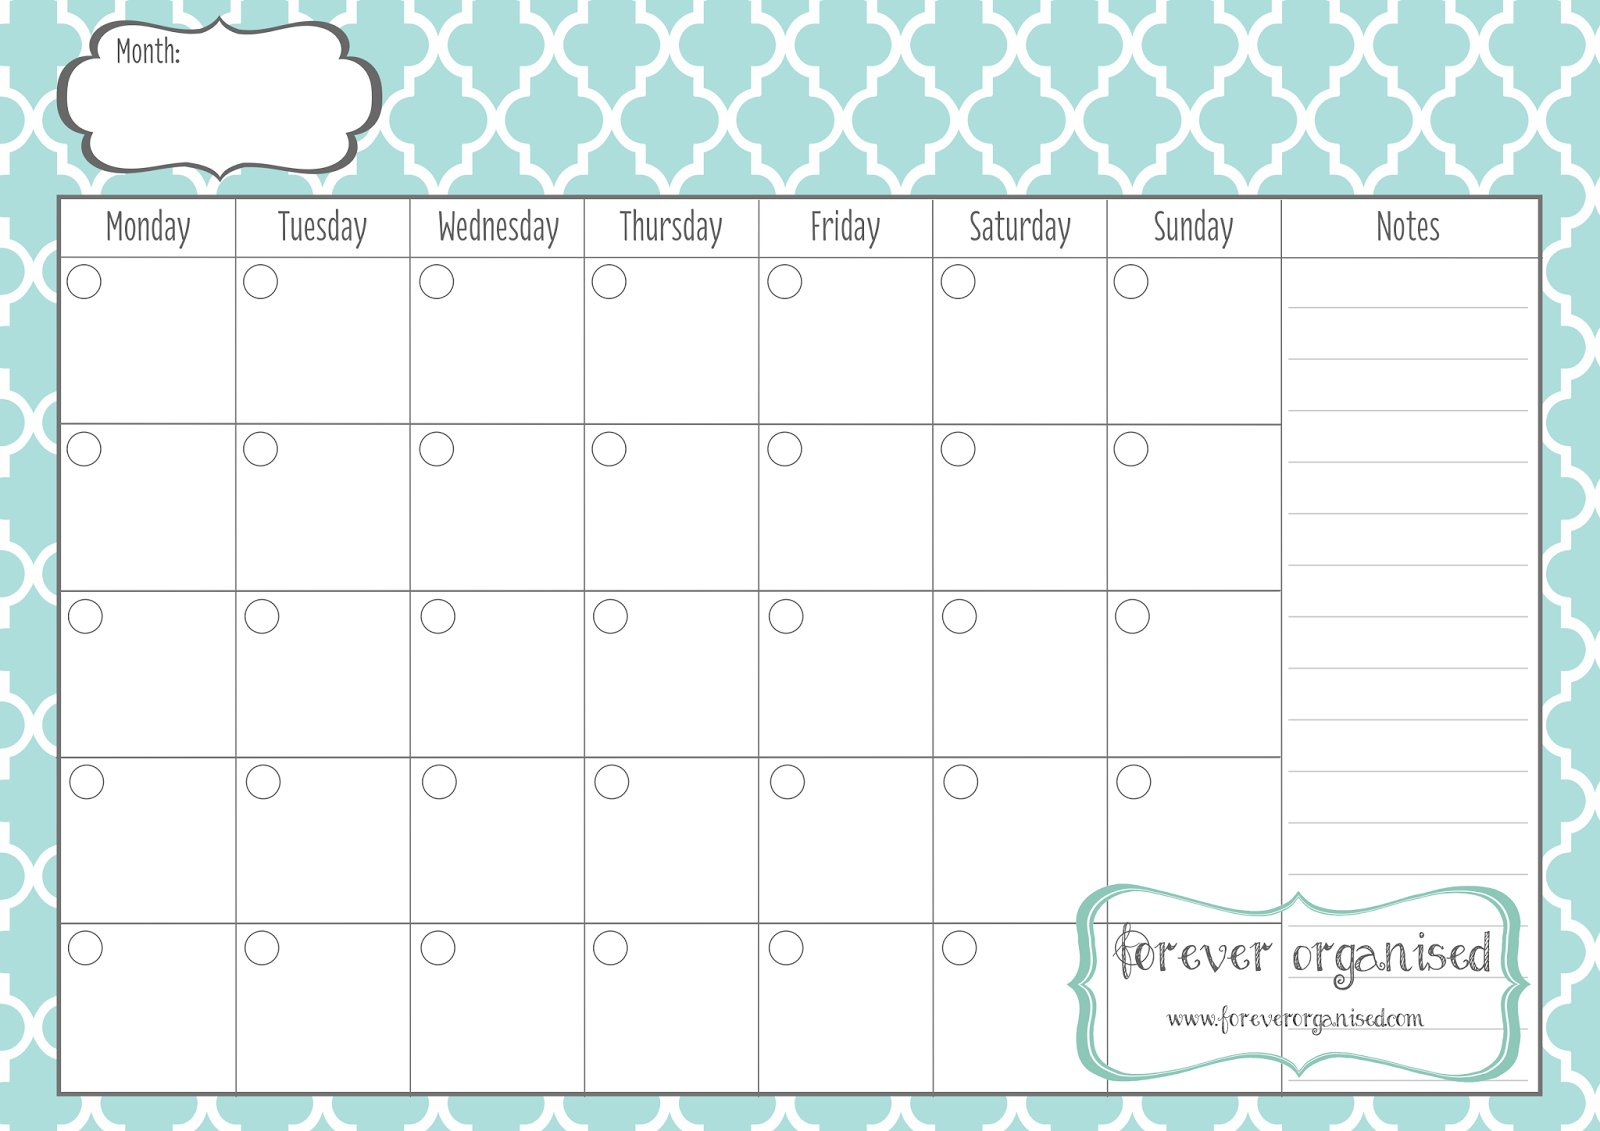 Monthly Calendar To Print – Templates Free Printable Fill Out A Calender Online And Print Out